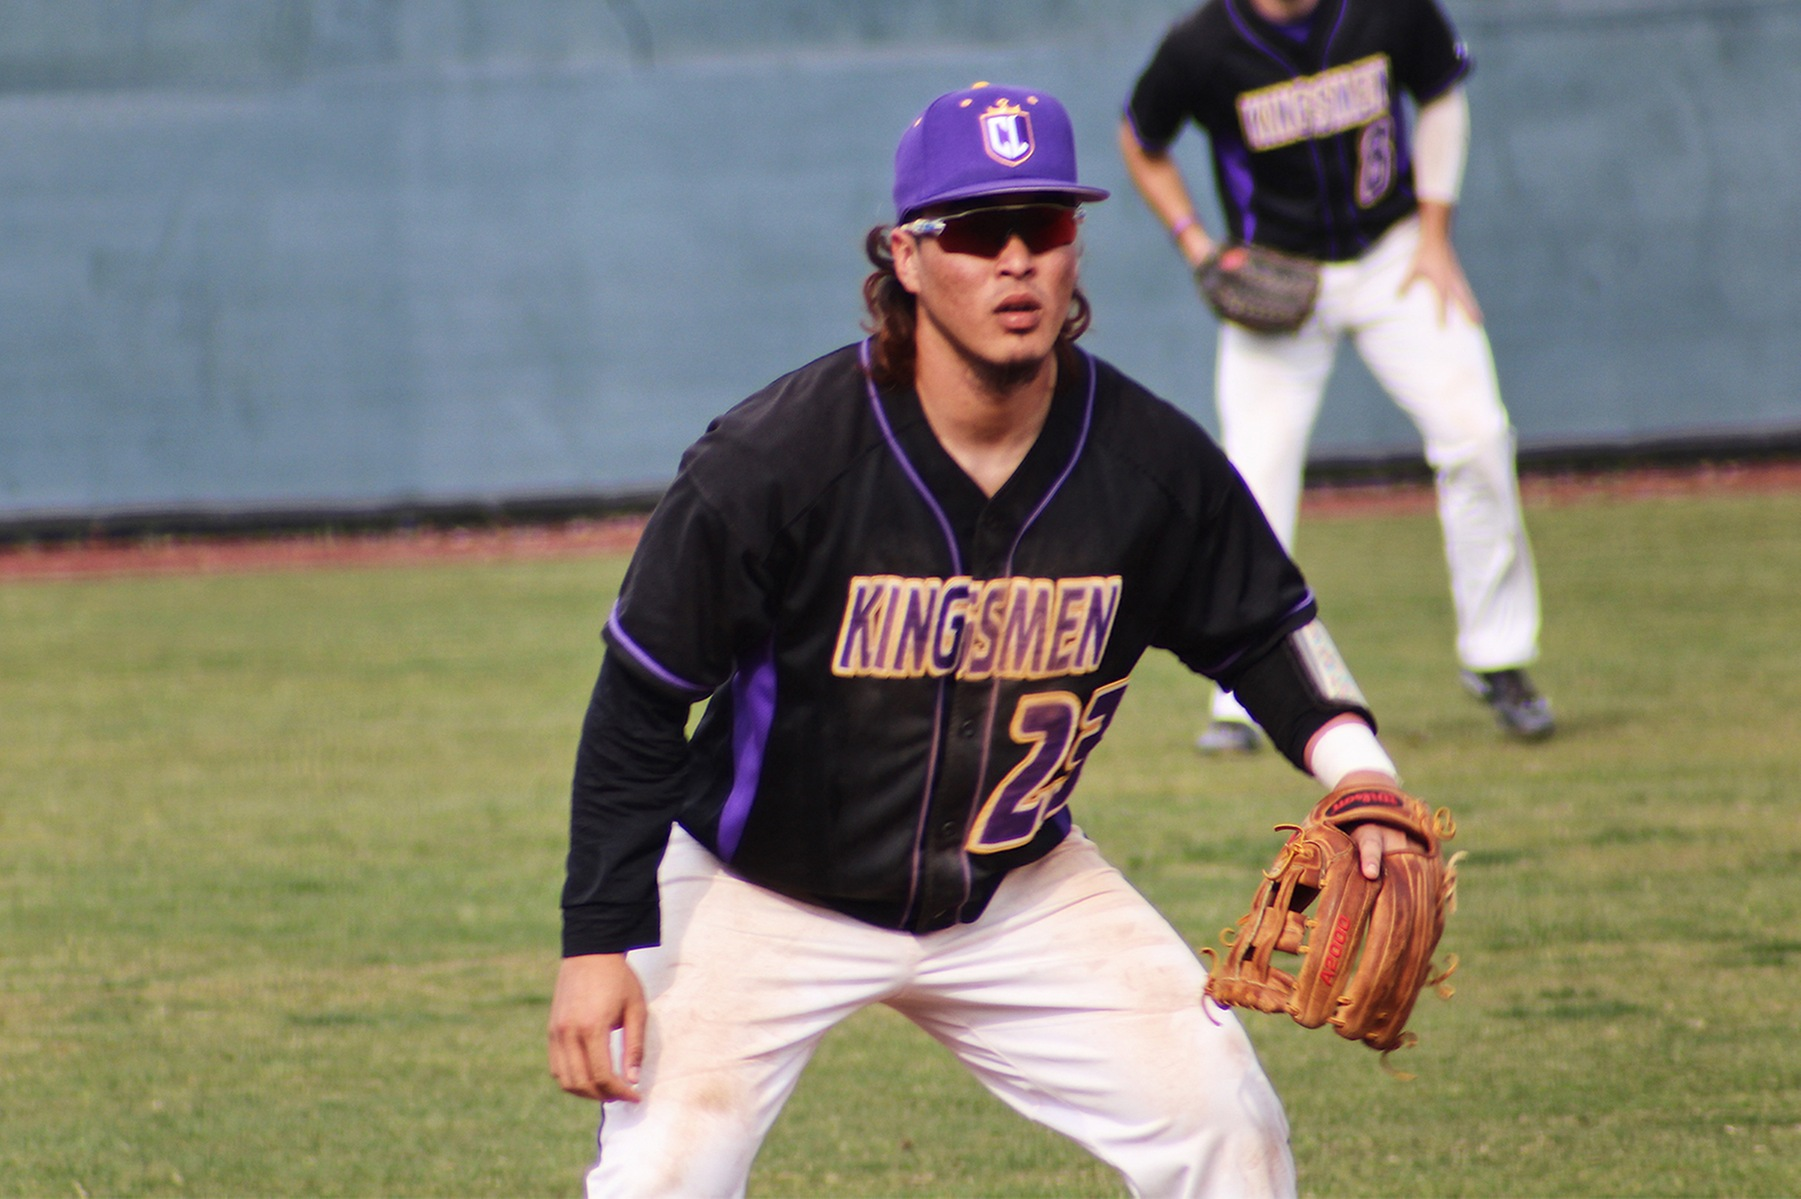 Ryne Yamashiro delivered a clutch bases-clearing double to spark a nine-run rally for the Kingsmen offense. (Photo Credit: Mariah Zermeno)